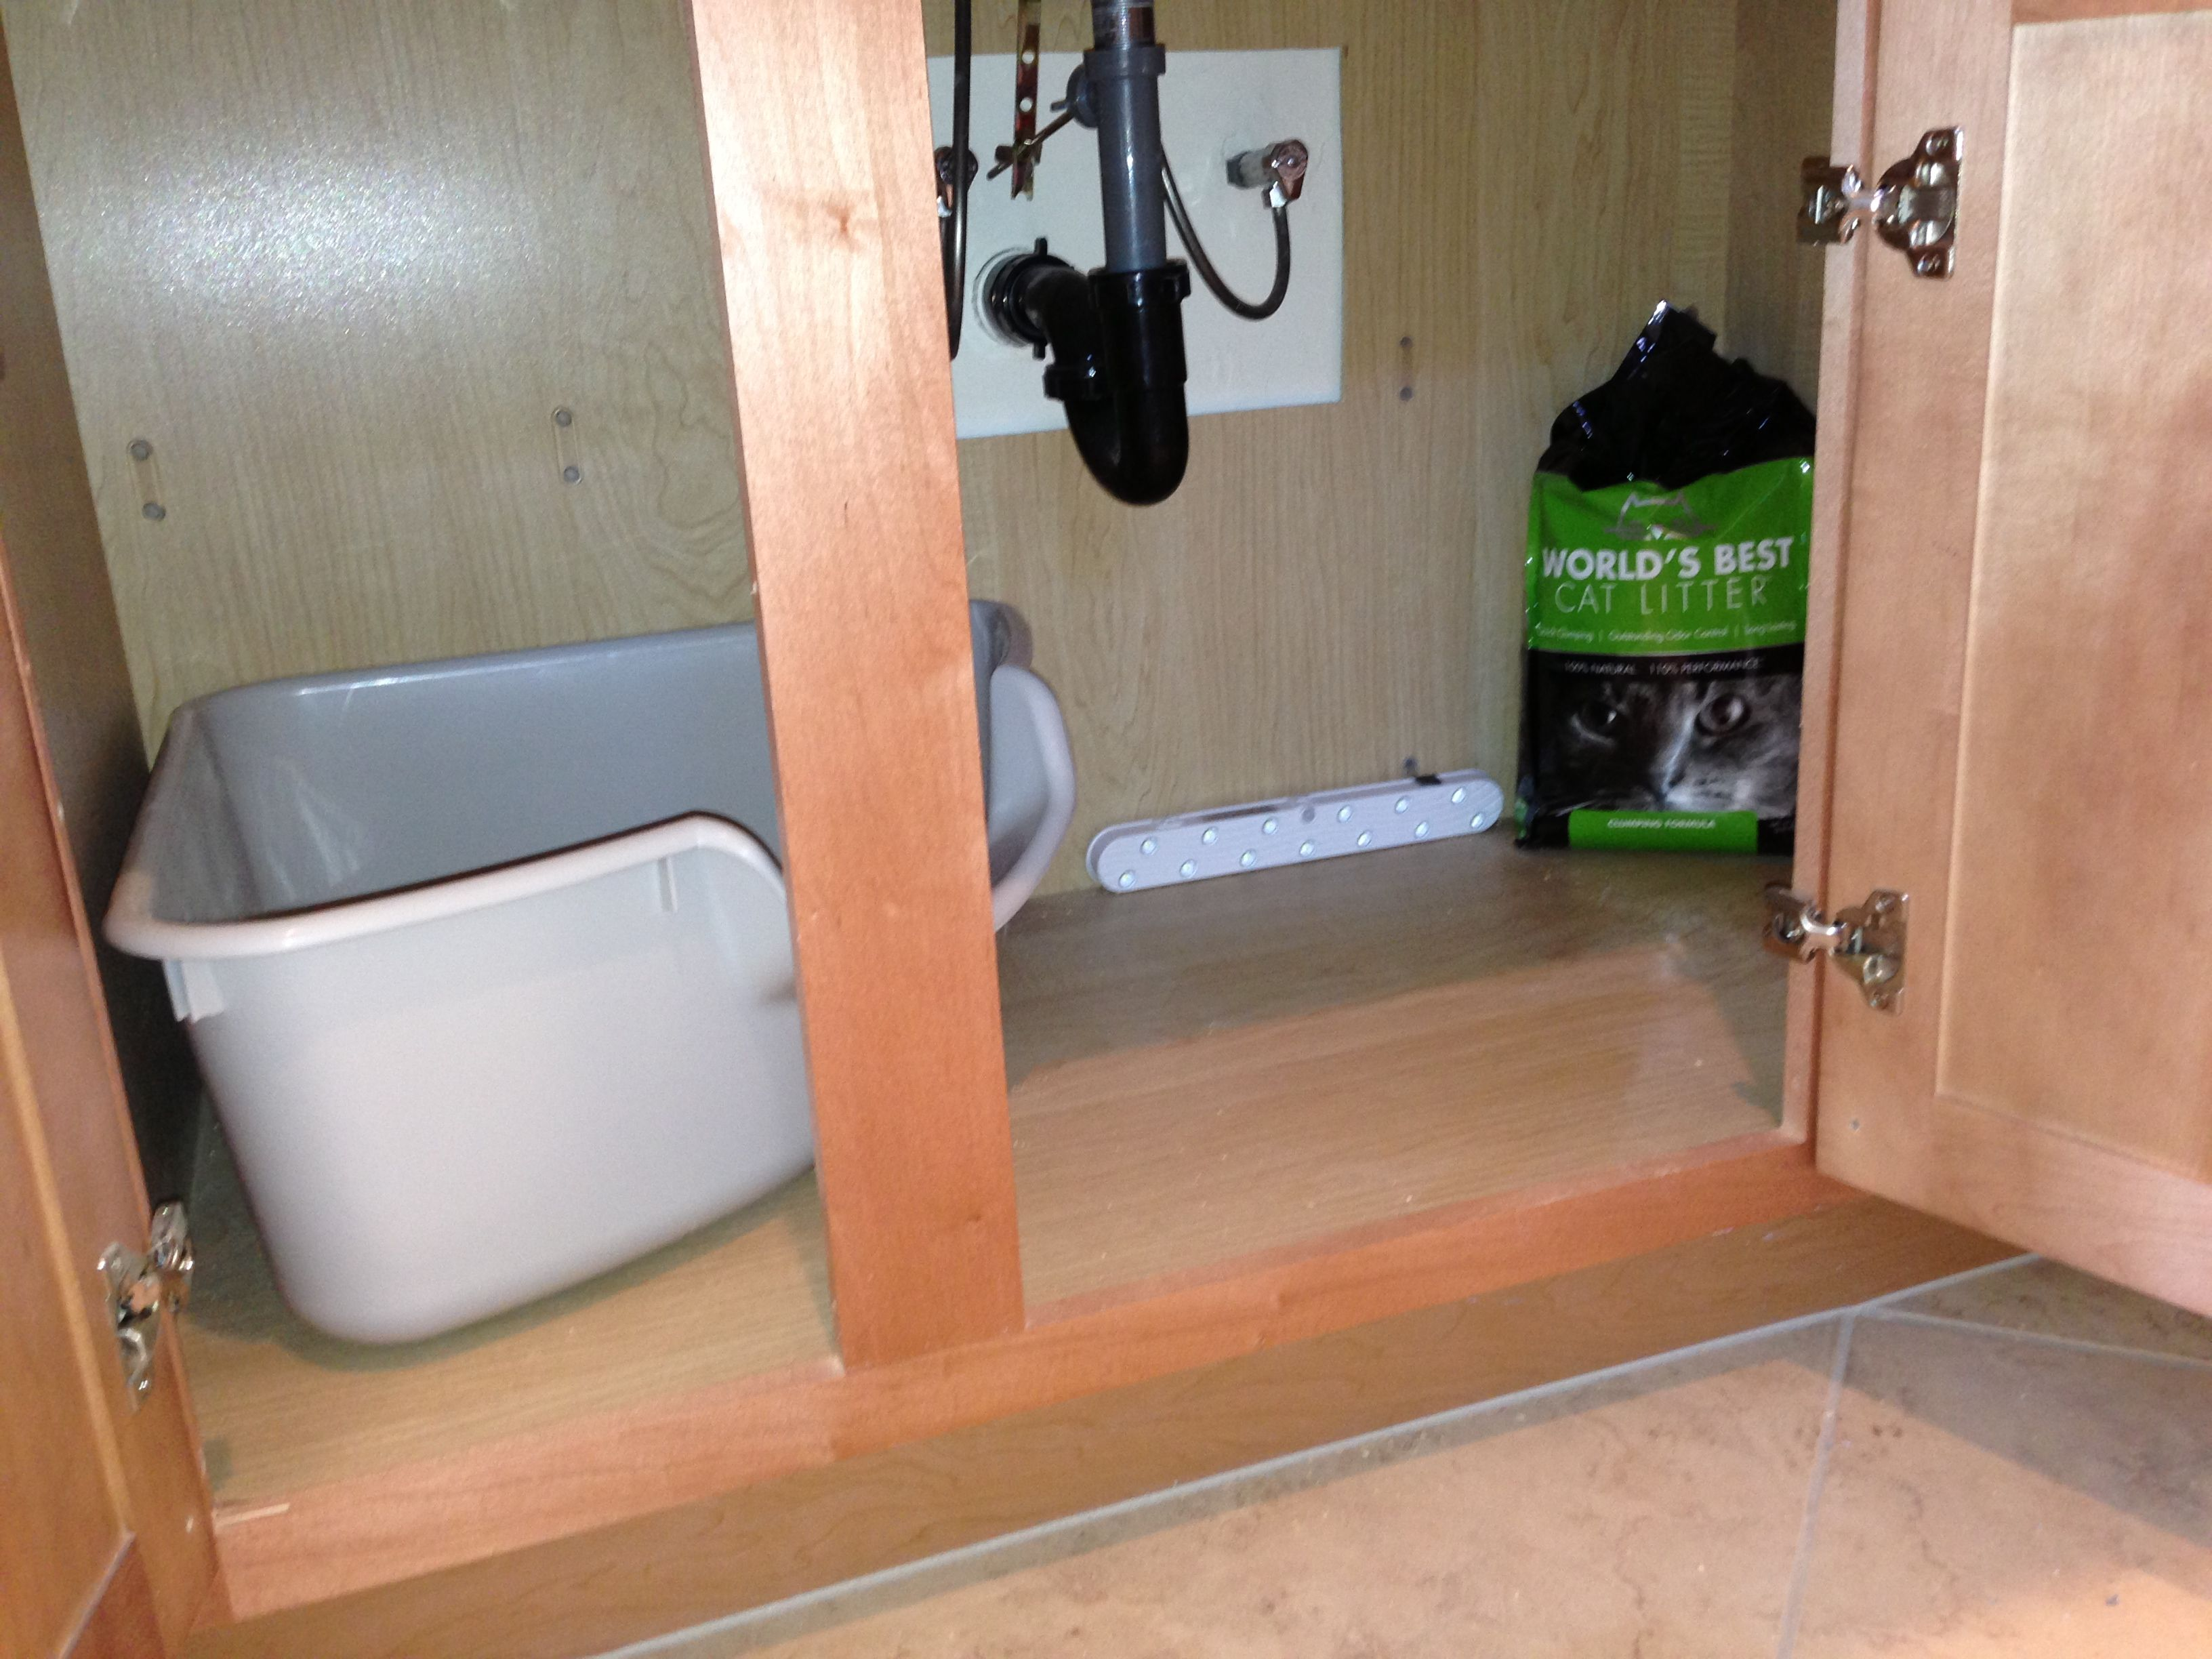 New Location For Lovely Cat Box Under Bathroom Sink Cabinet